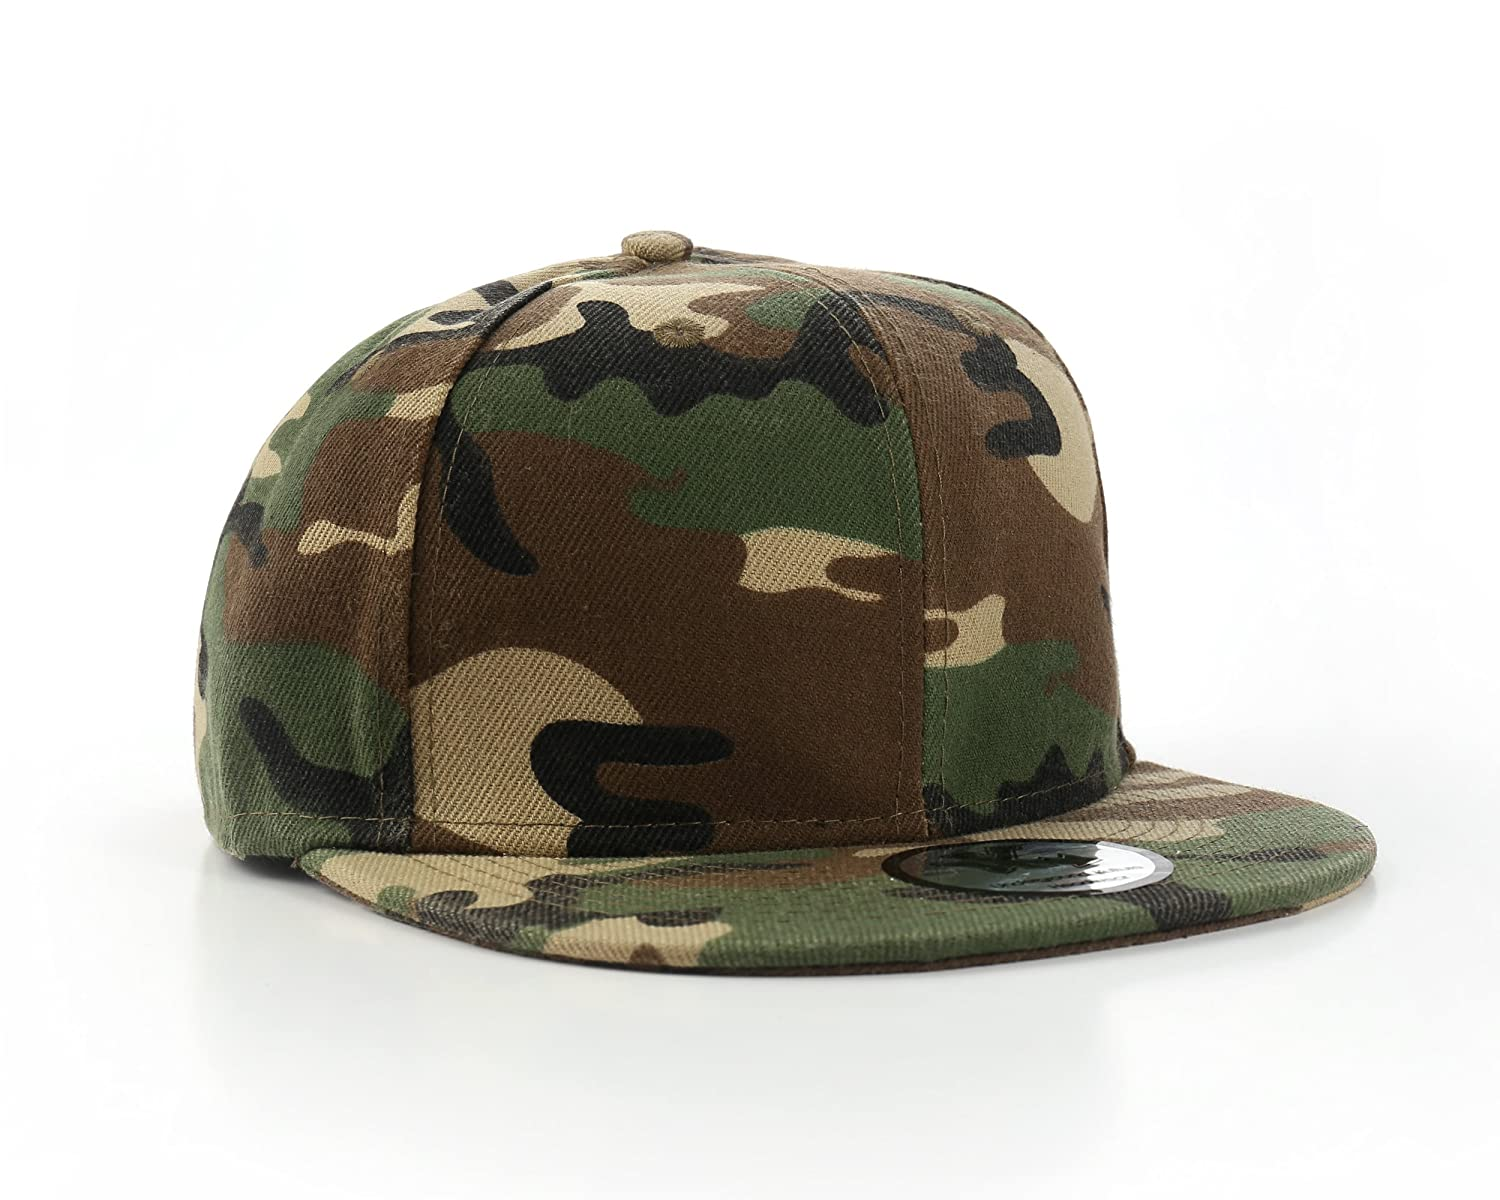 Plain Camo / Army Fitted Flat Peak Baseball Cap 7 3/8""